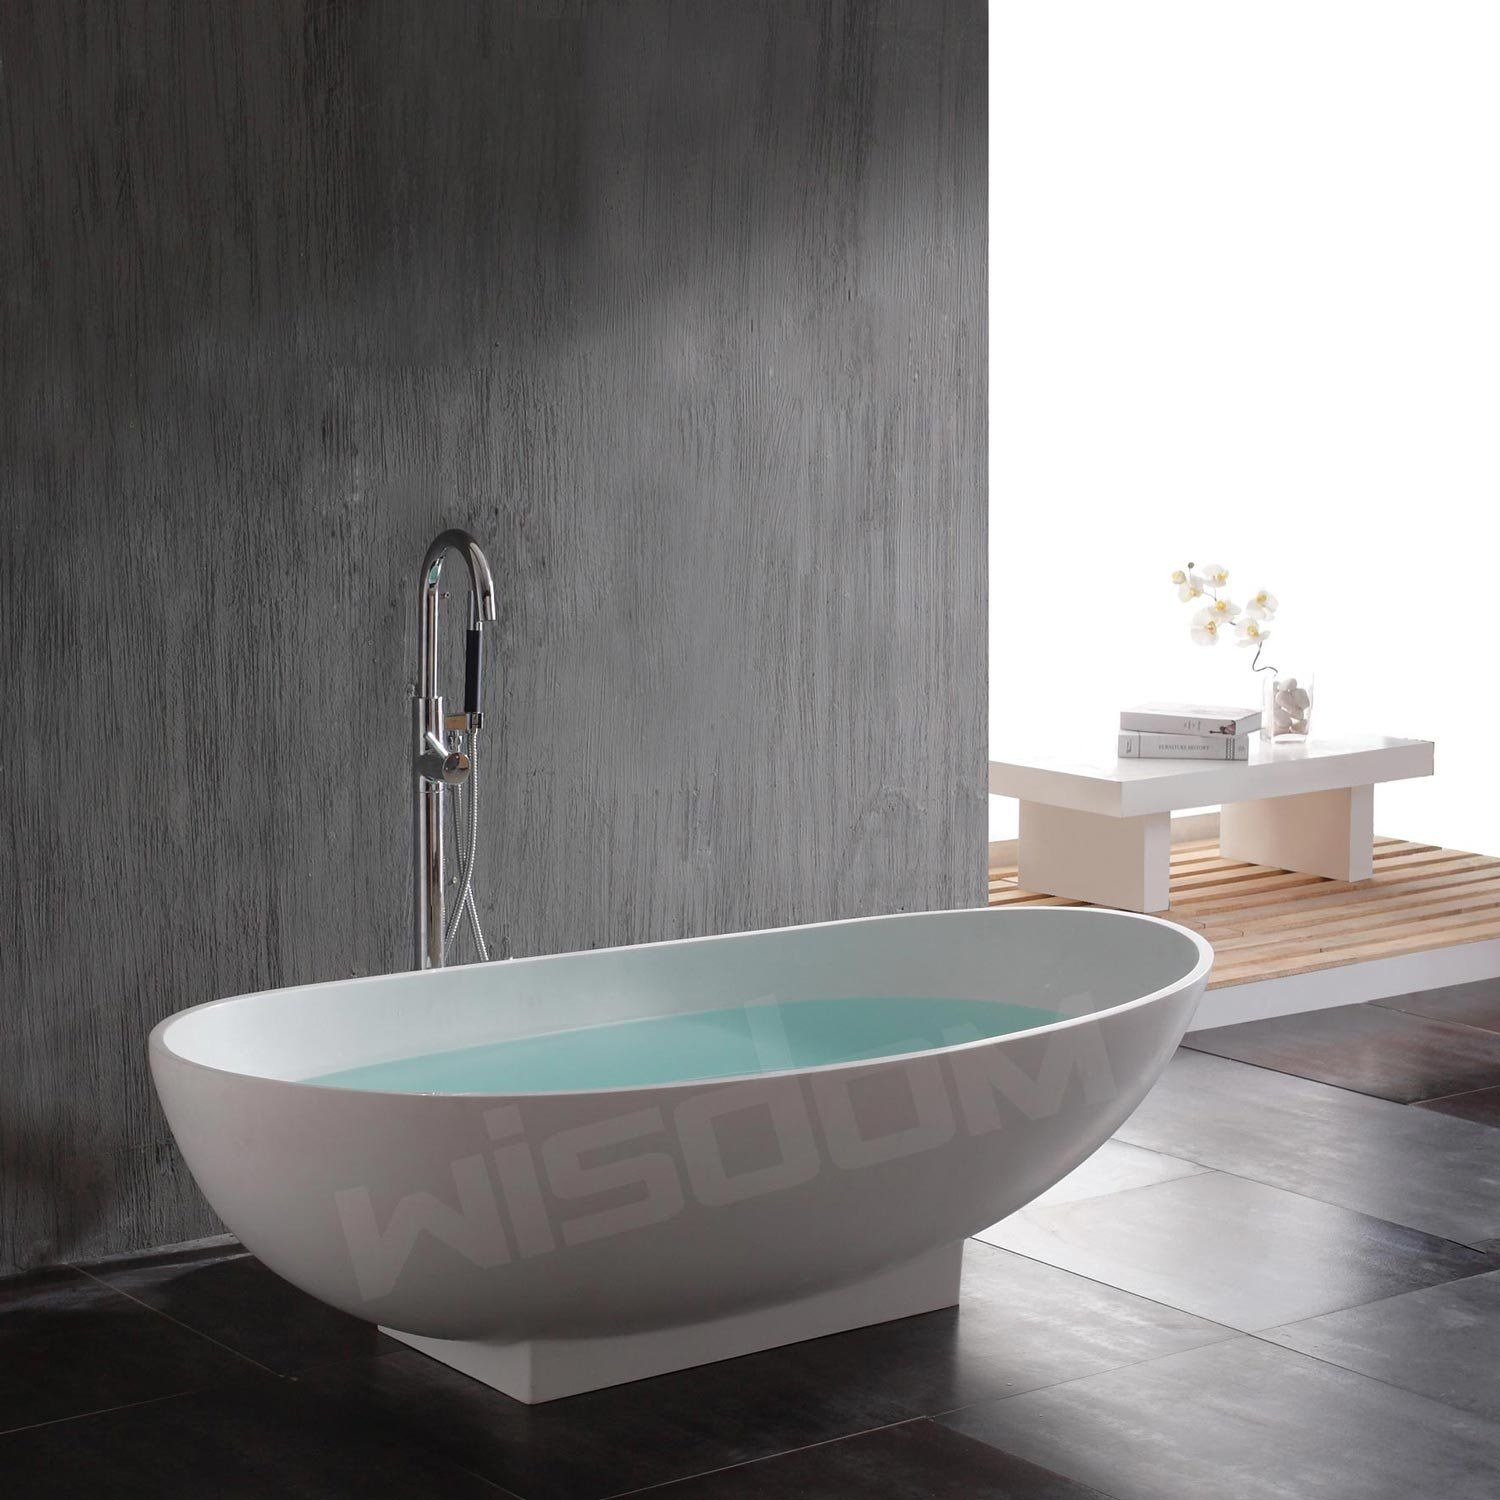 Bathroom Tab Design: Beautiful Freestanding Tubs For Modern Bathroom Design